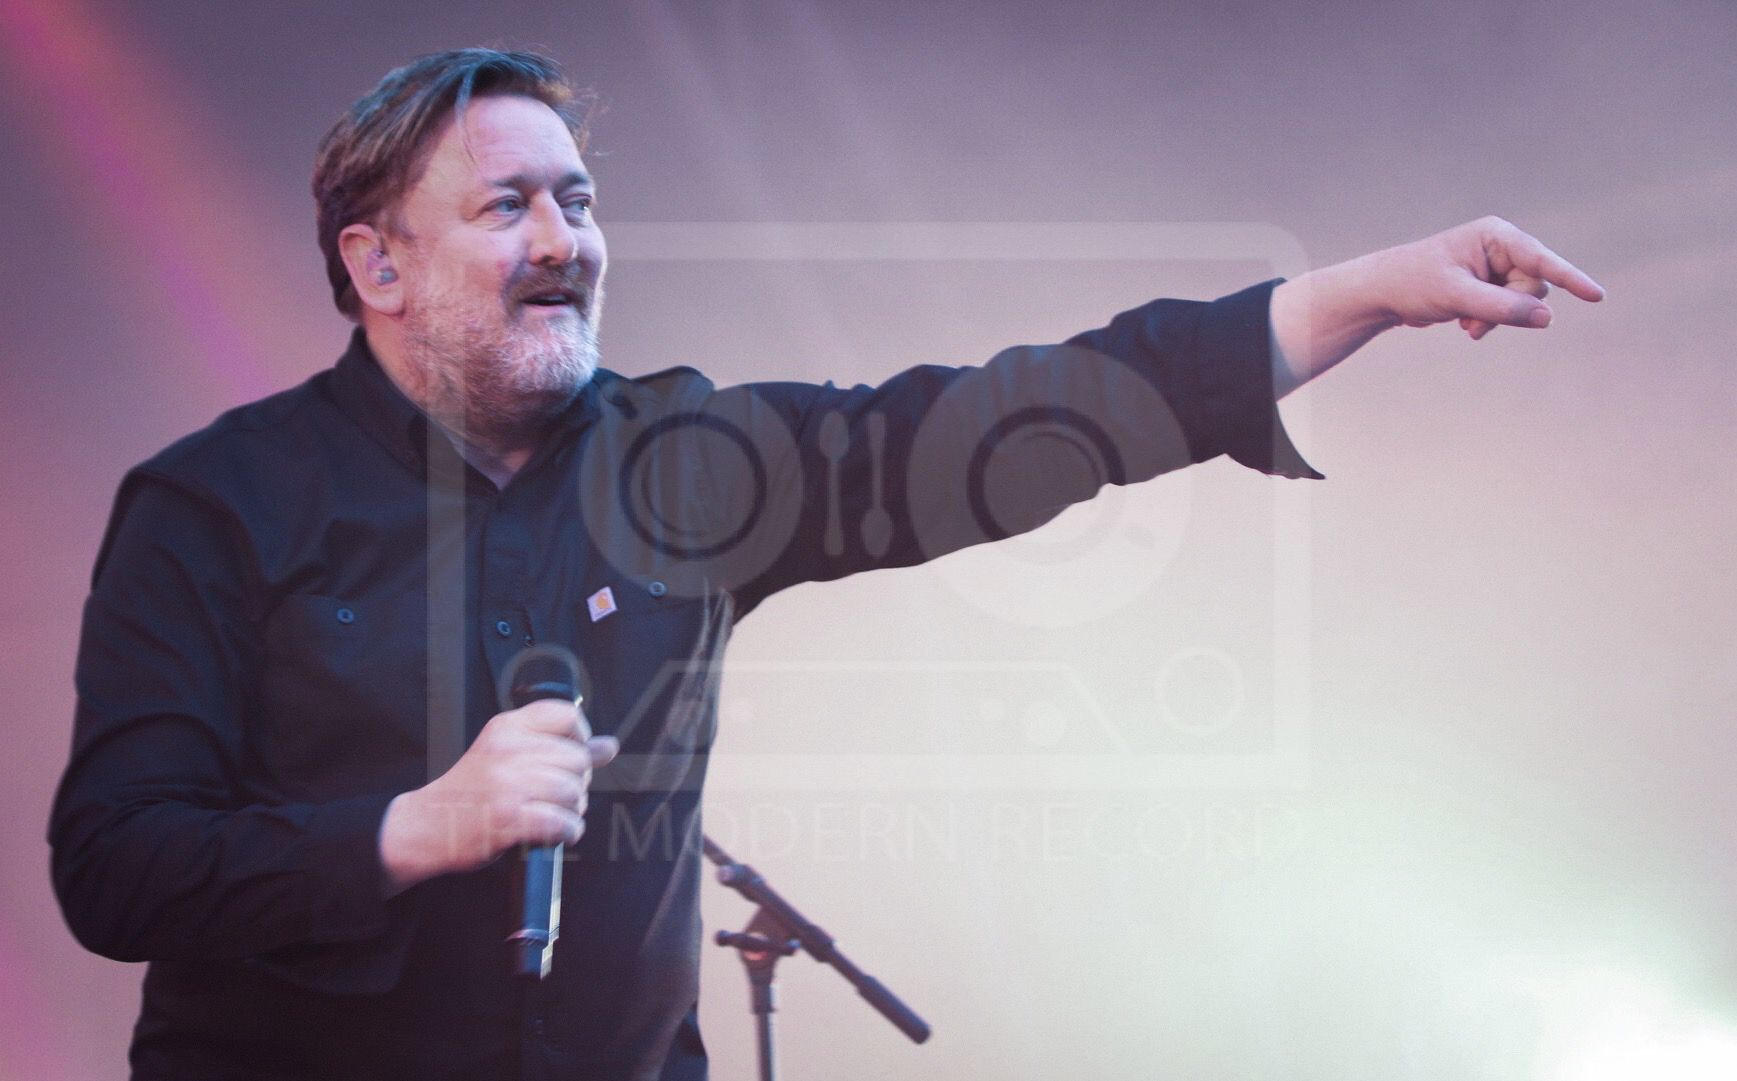 ELBOW PERFORMING AT MANCHESTER'S CASTLEFIELD BOWL AS PART OF SOUNDS OF THE CITY 2019  PICTURE BY: BETHANY MORISON